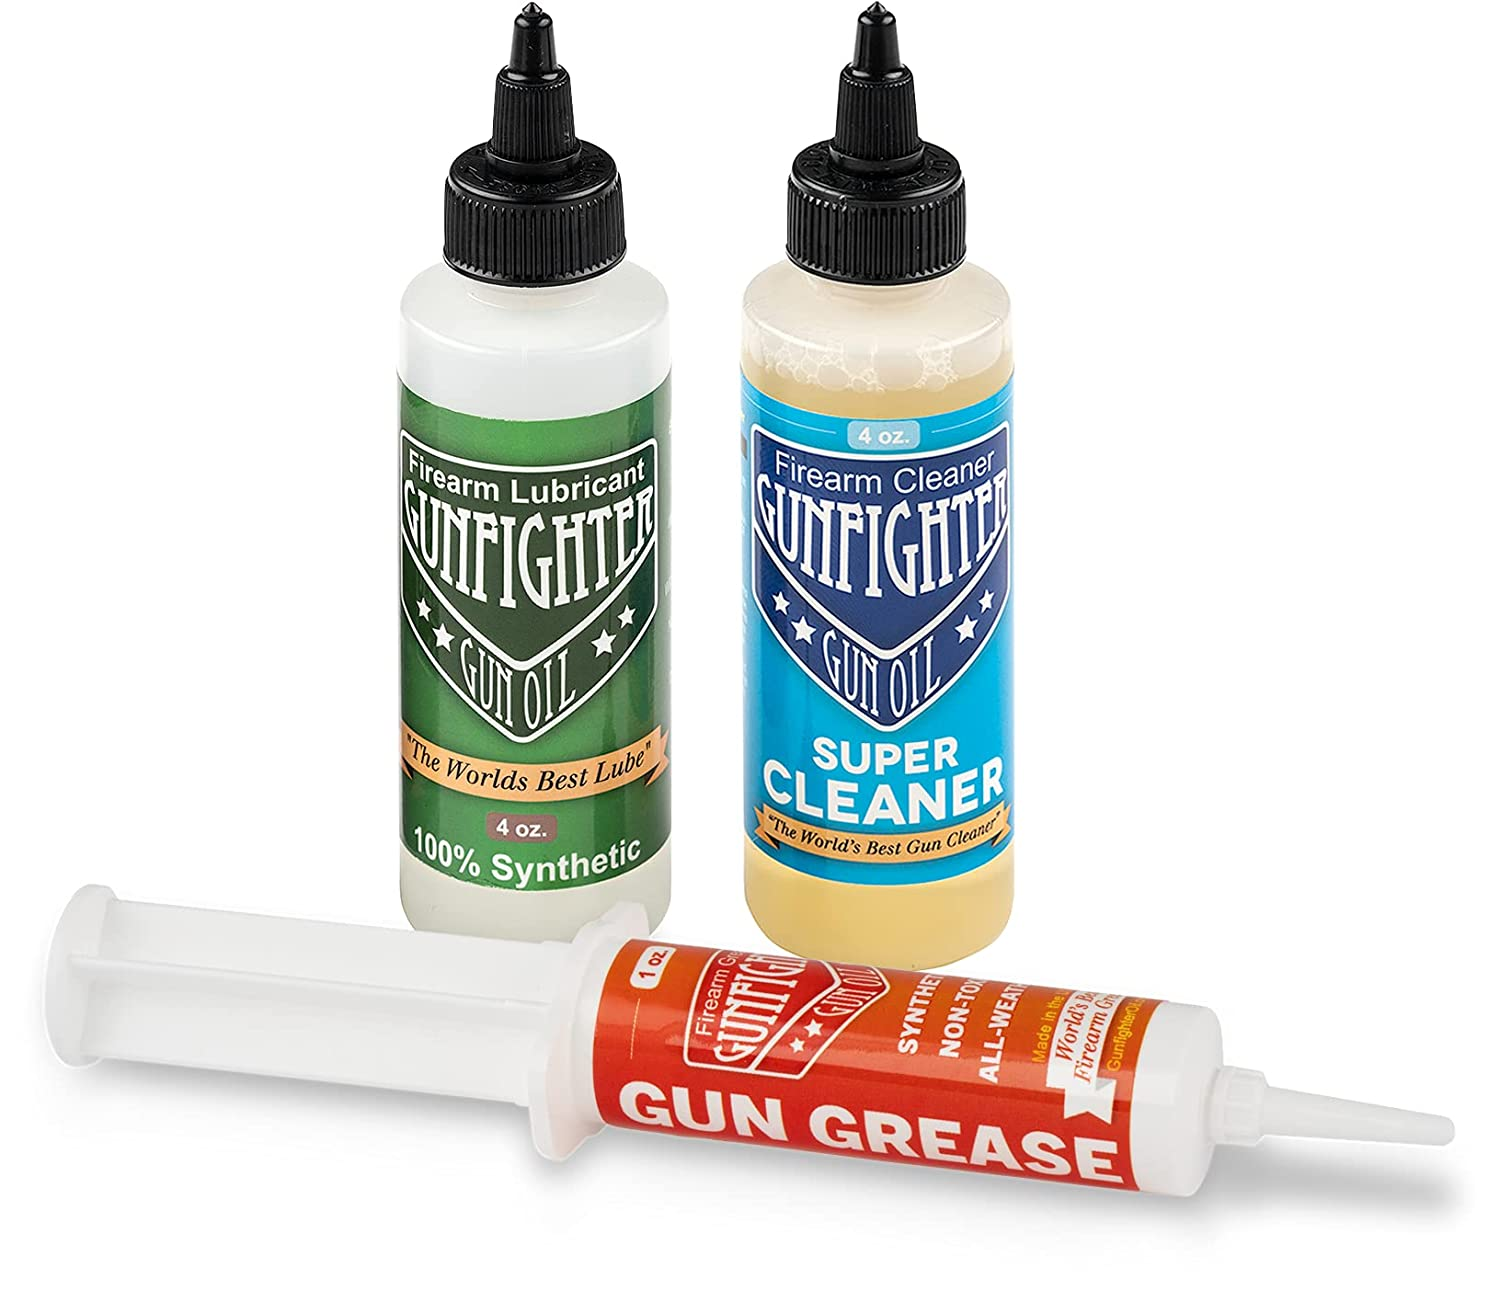 Gunfighter Max 47% OFF Gun Oil All American 1o Cleaner 2021 autumn and winter new 4oz Combo Lube